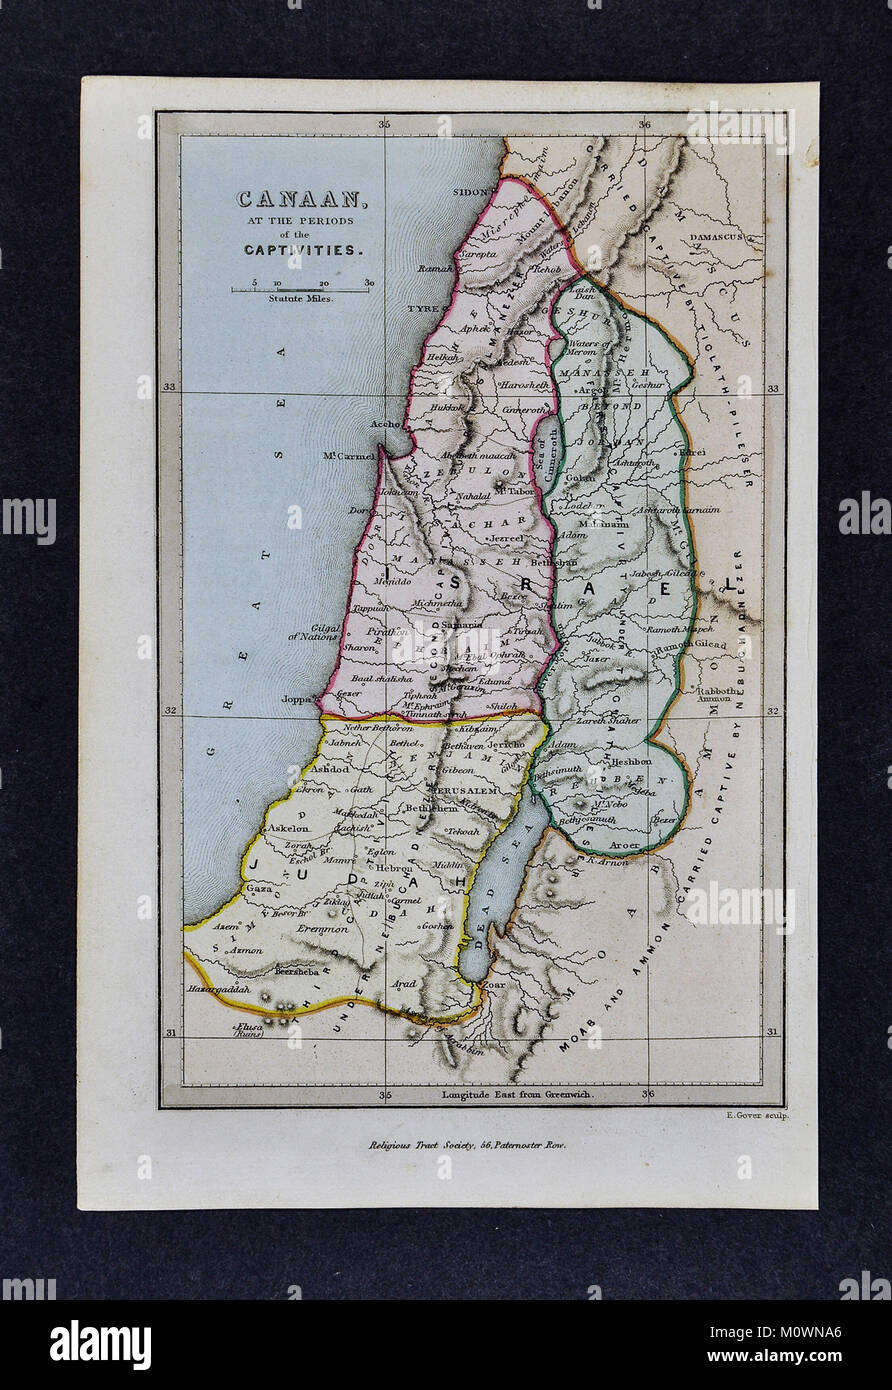 1799 Bible Tract Society Map - Canaan at the Time of Captivities - Ancient Judah & Israel - Old Testament - Stock Image